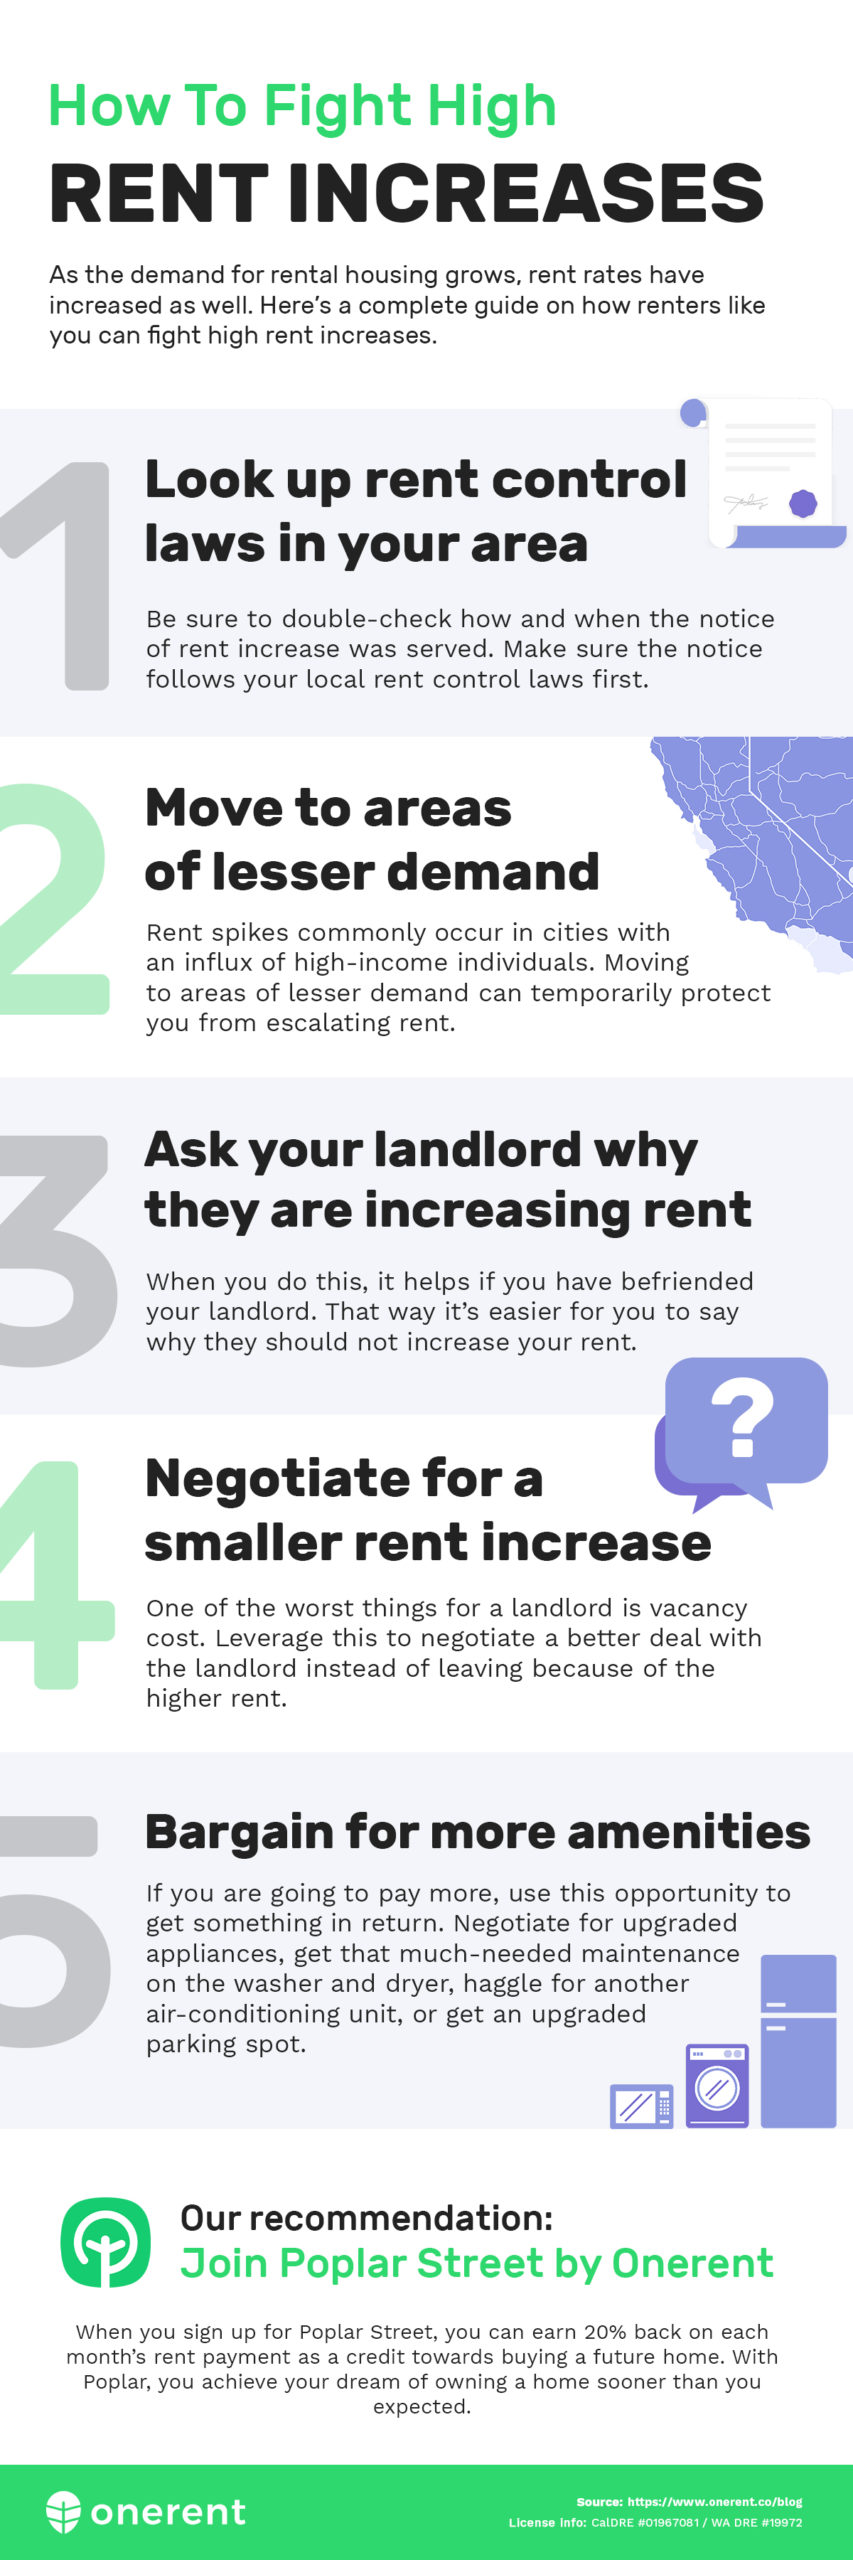 How Renters Can Fight High Rent Increases